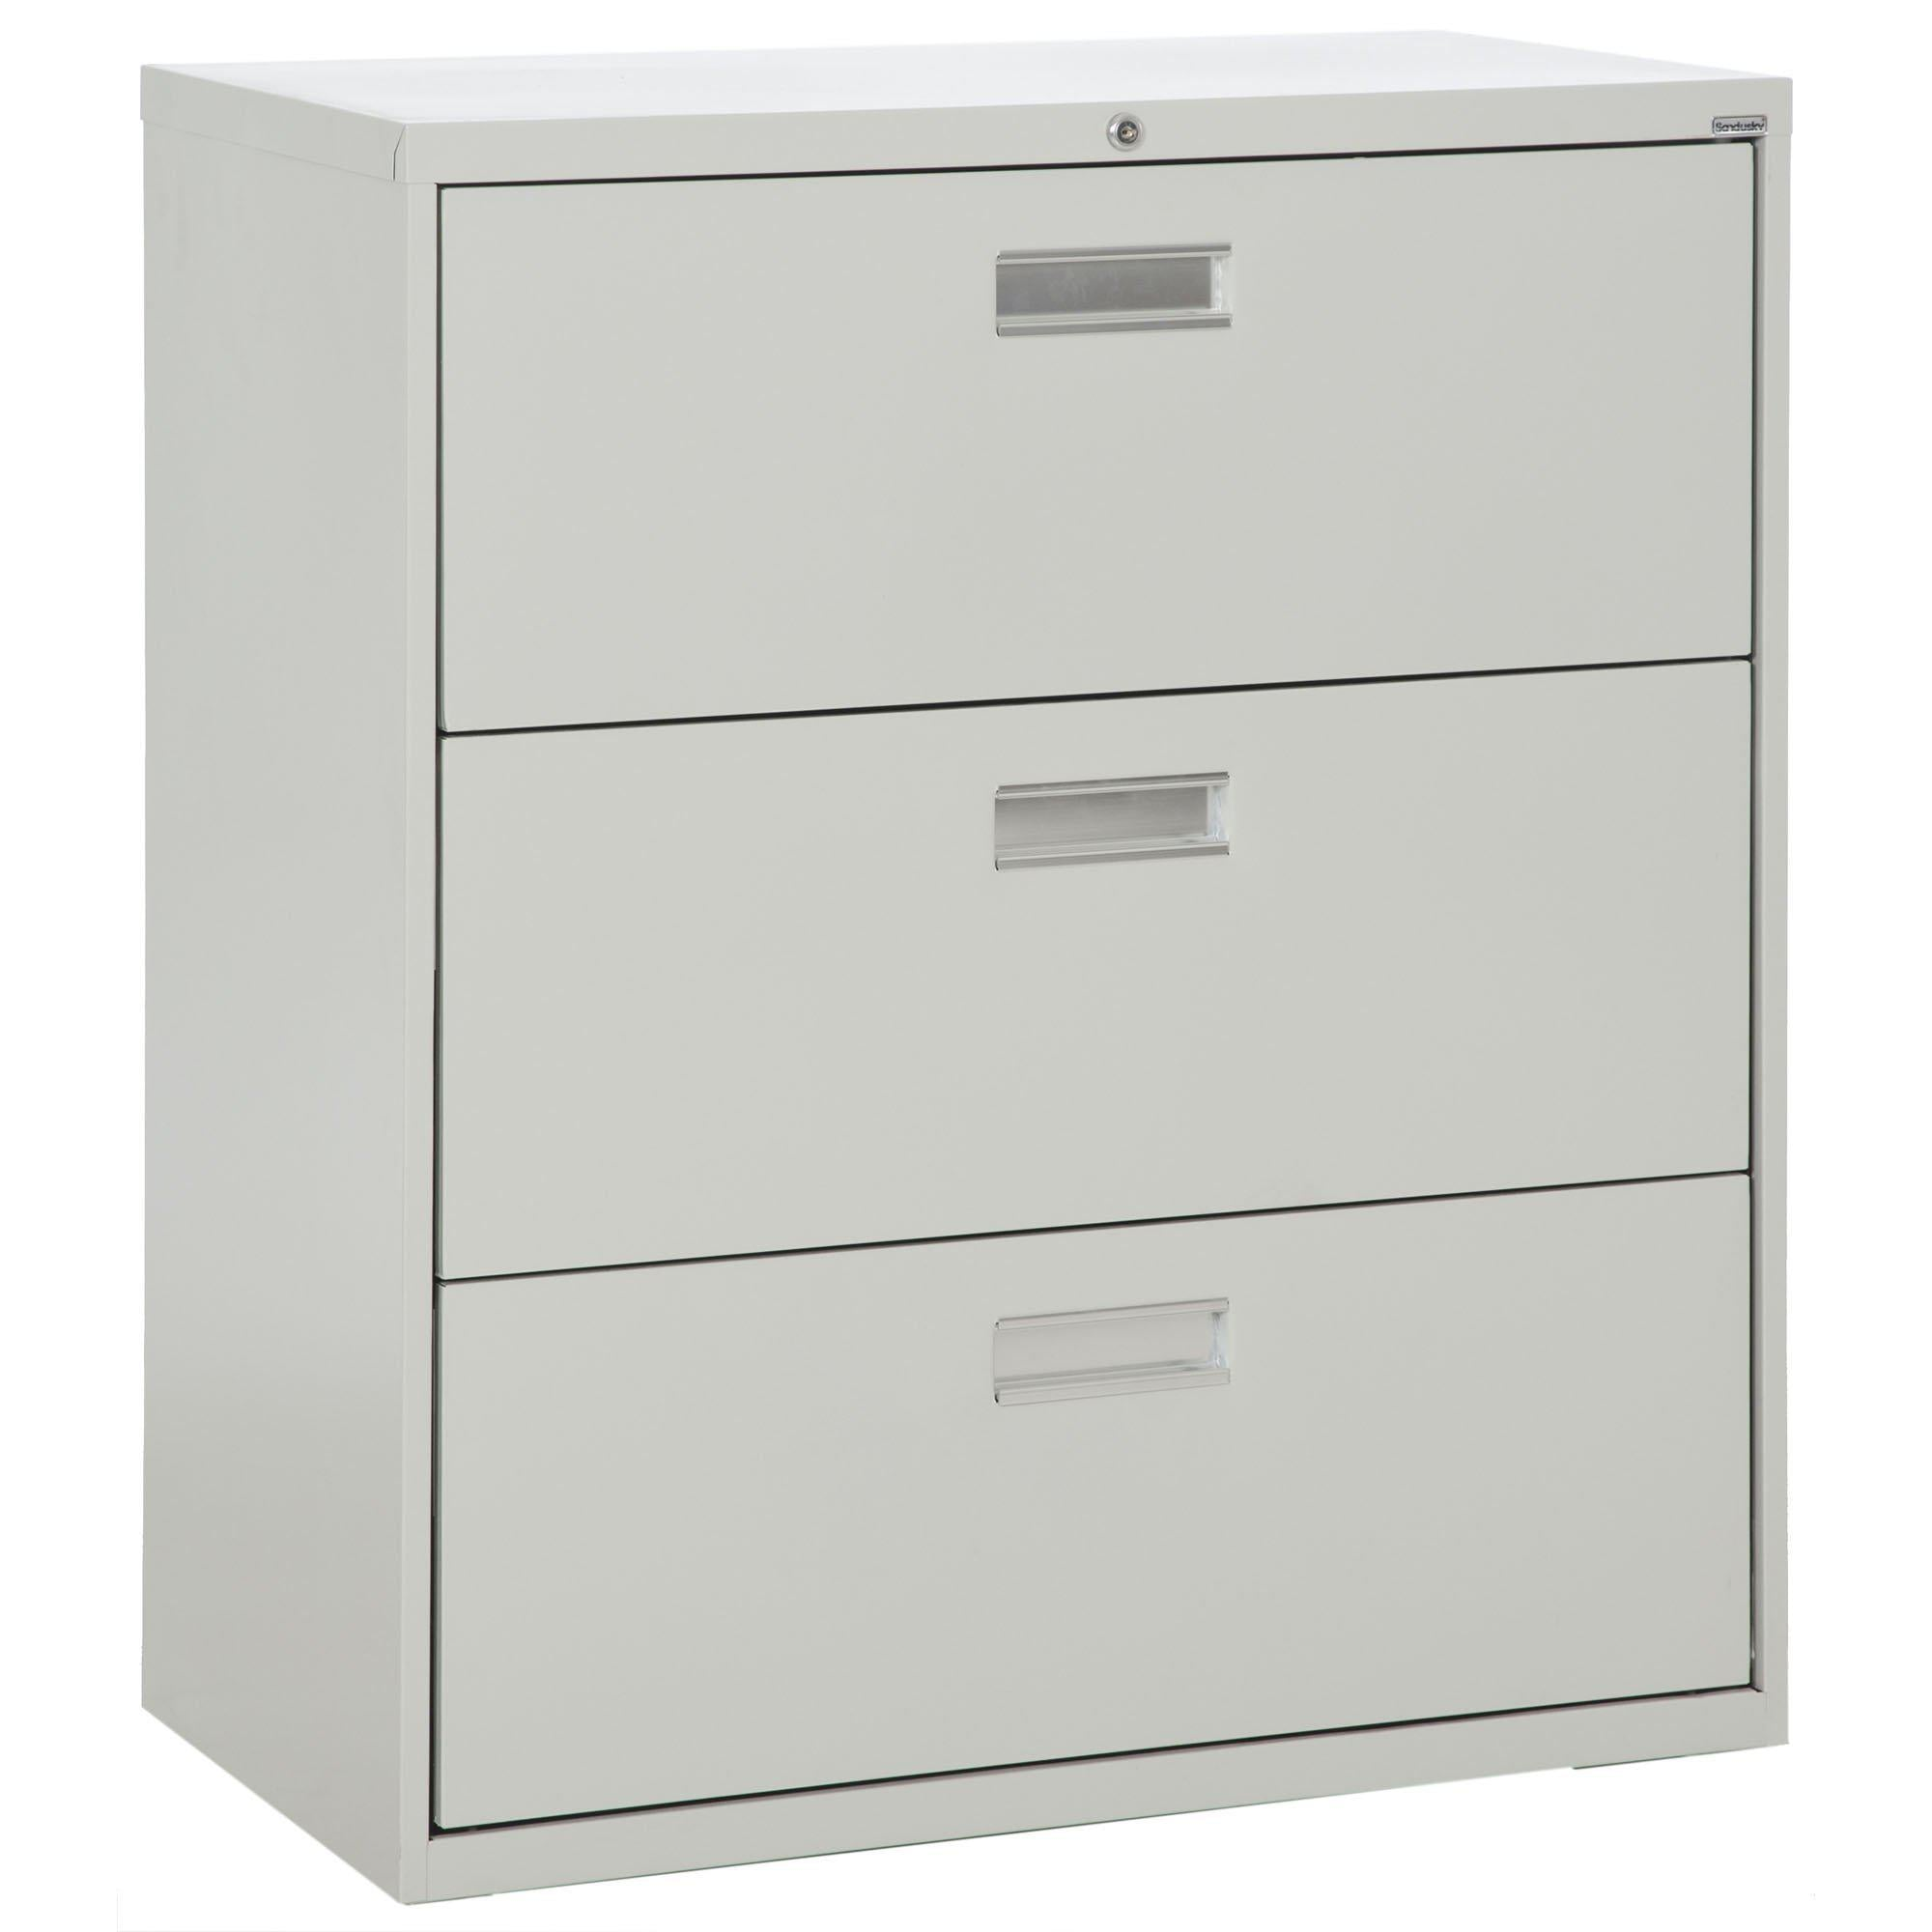 600 Series Lateral File, 3 Drawer, 42 x 19.25 x 40.875, Dove Gray